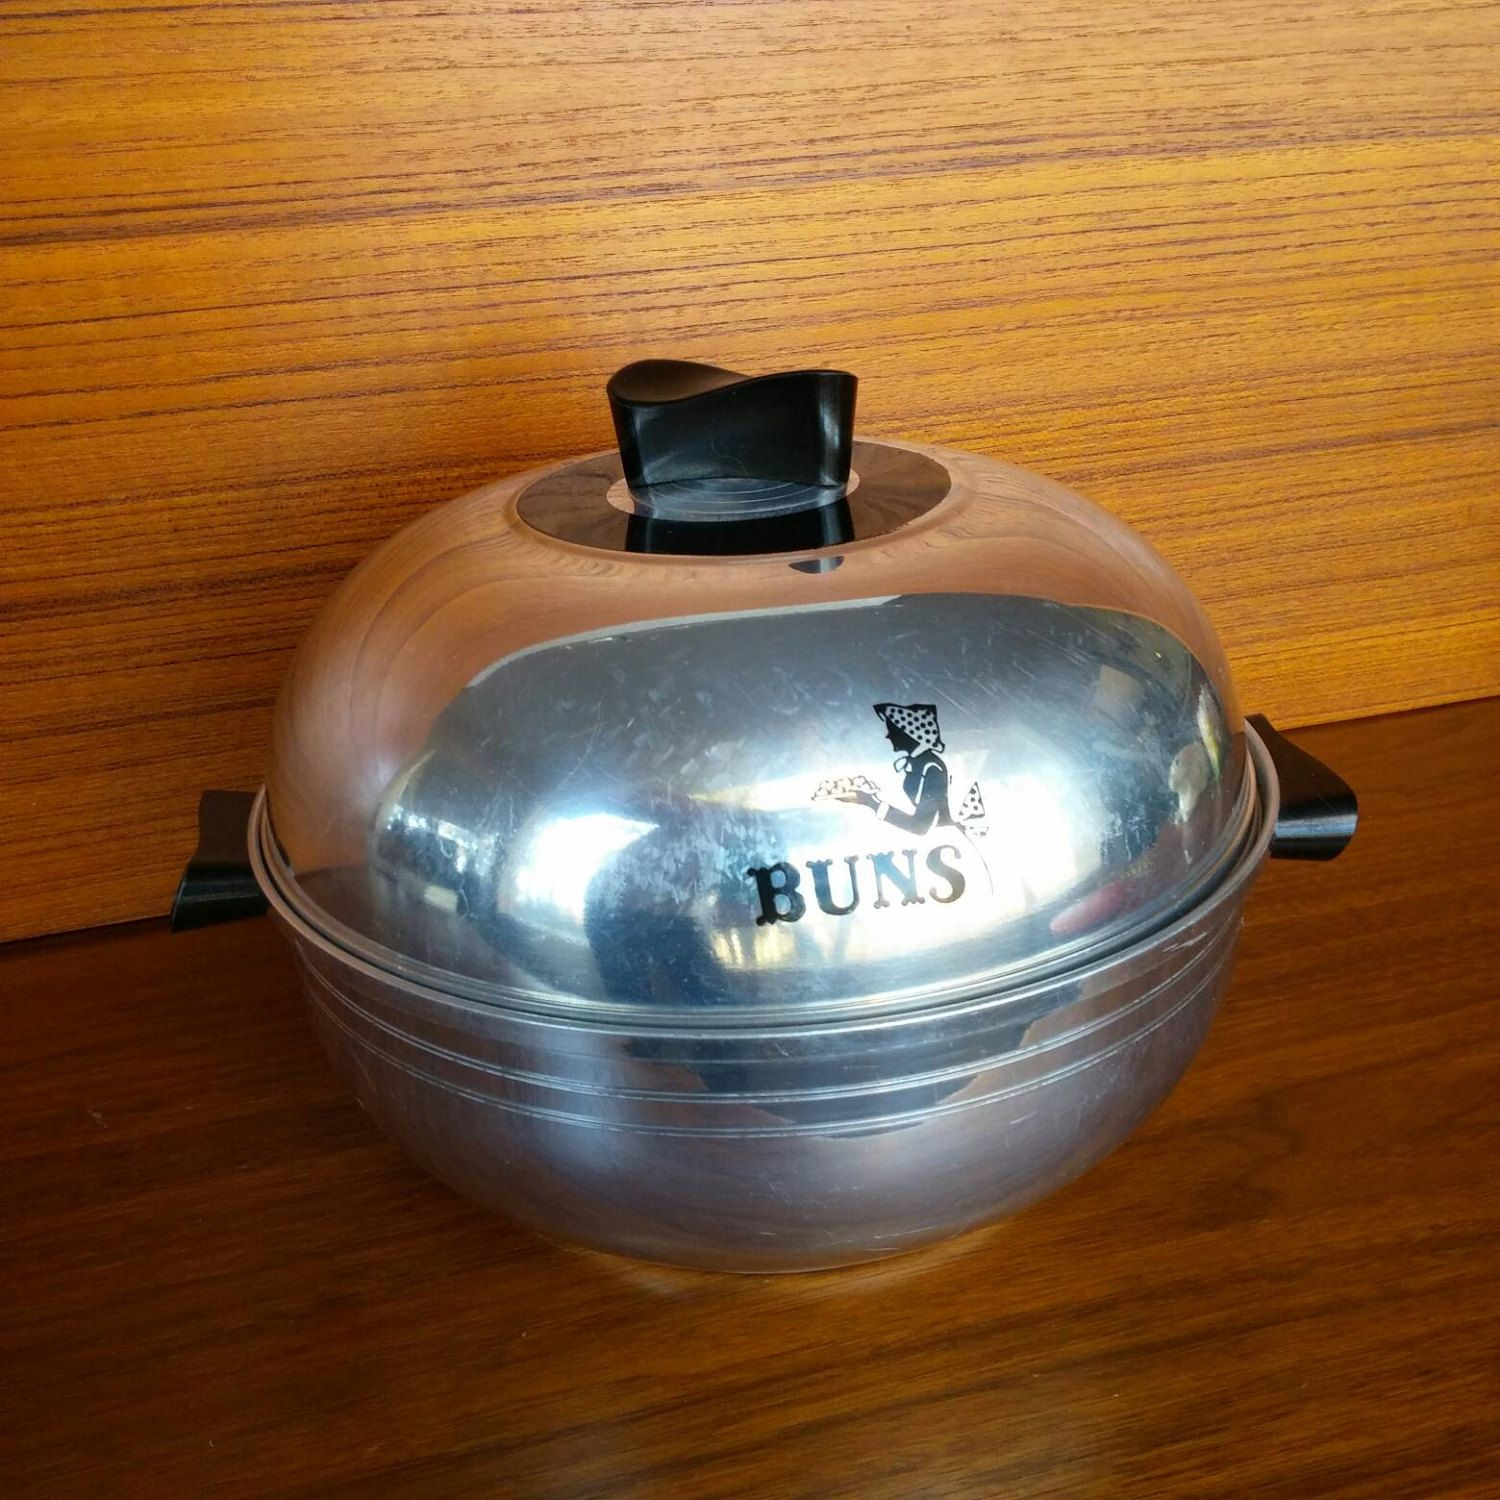 Vintage Bun Warmer West Bend Serving Oven Aluminum Stove Top By Server Bread Jimpiphanys On